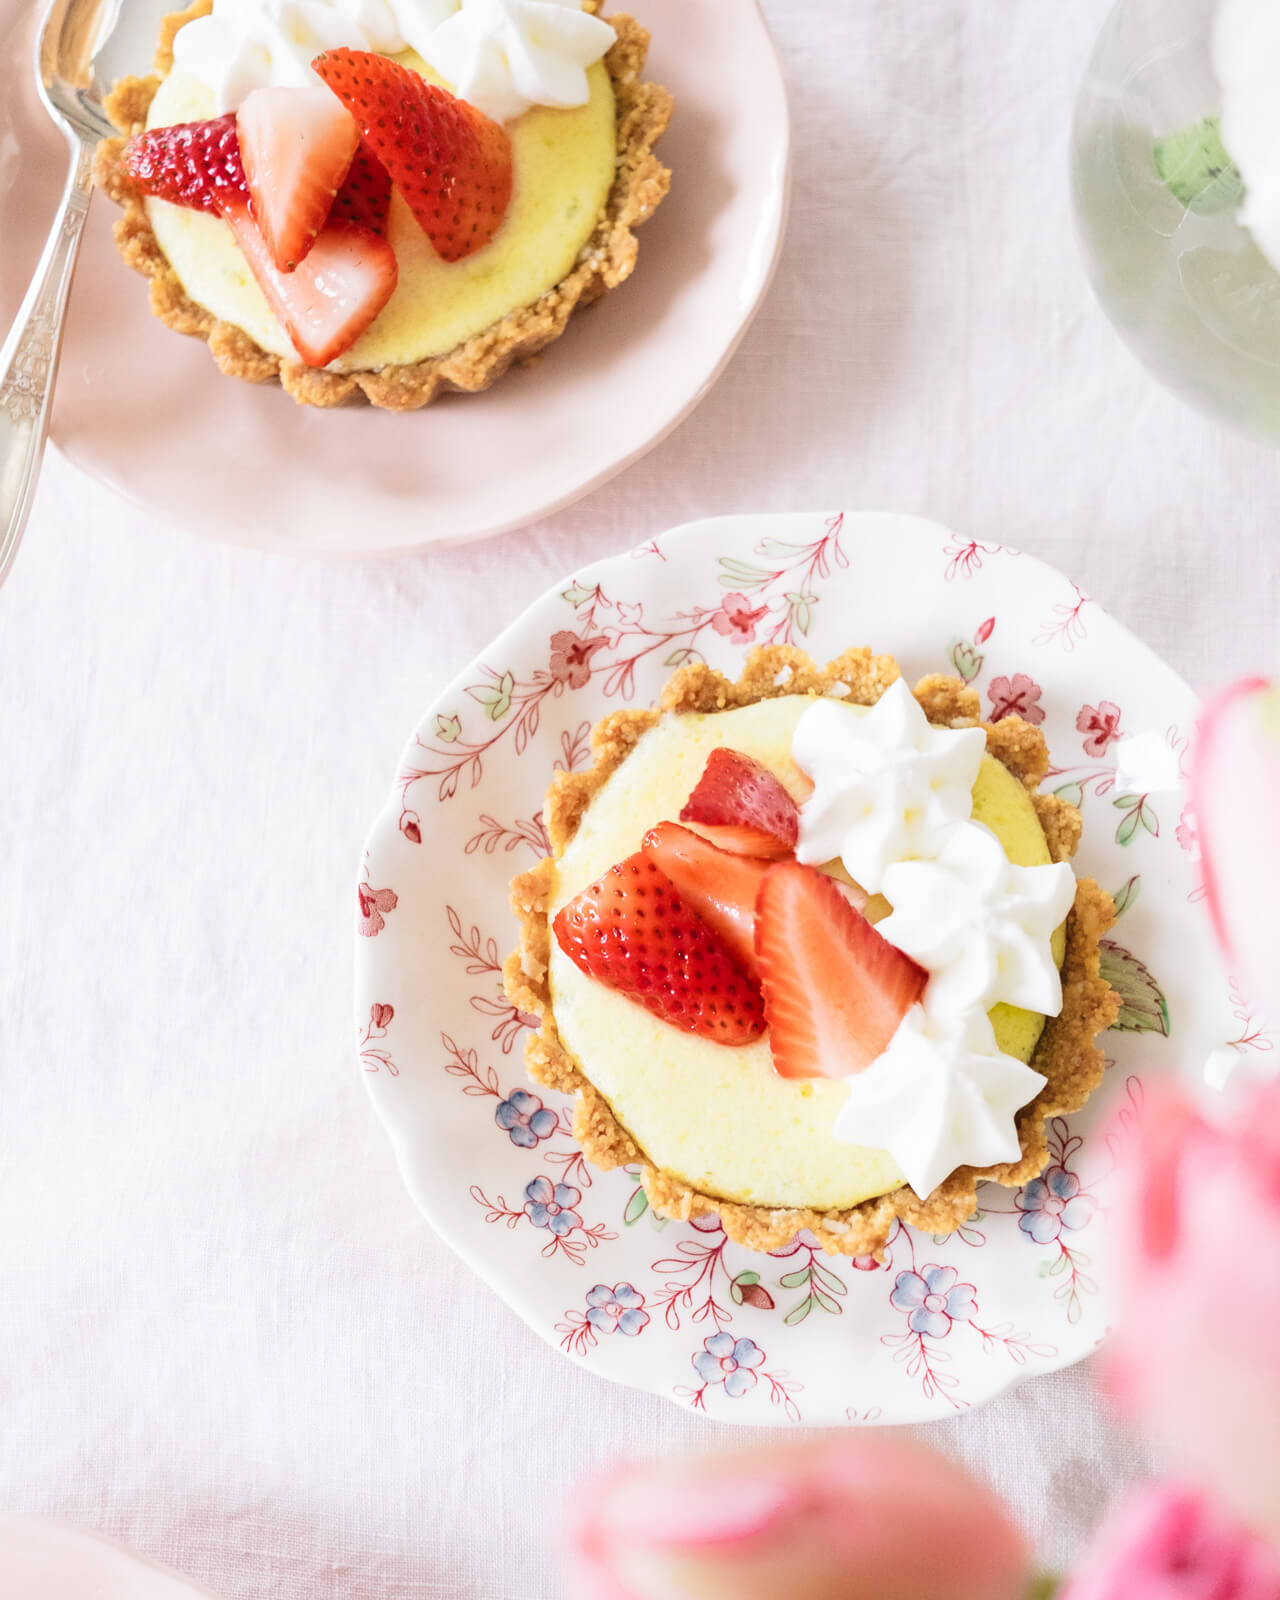 delicious dessert recipe for mini key lime tarts with macerated strawberries